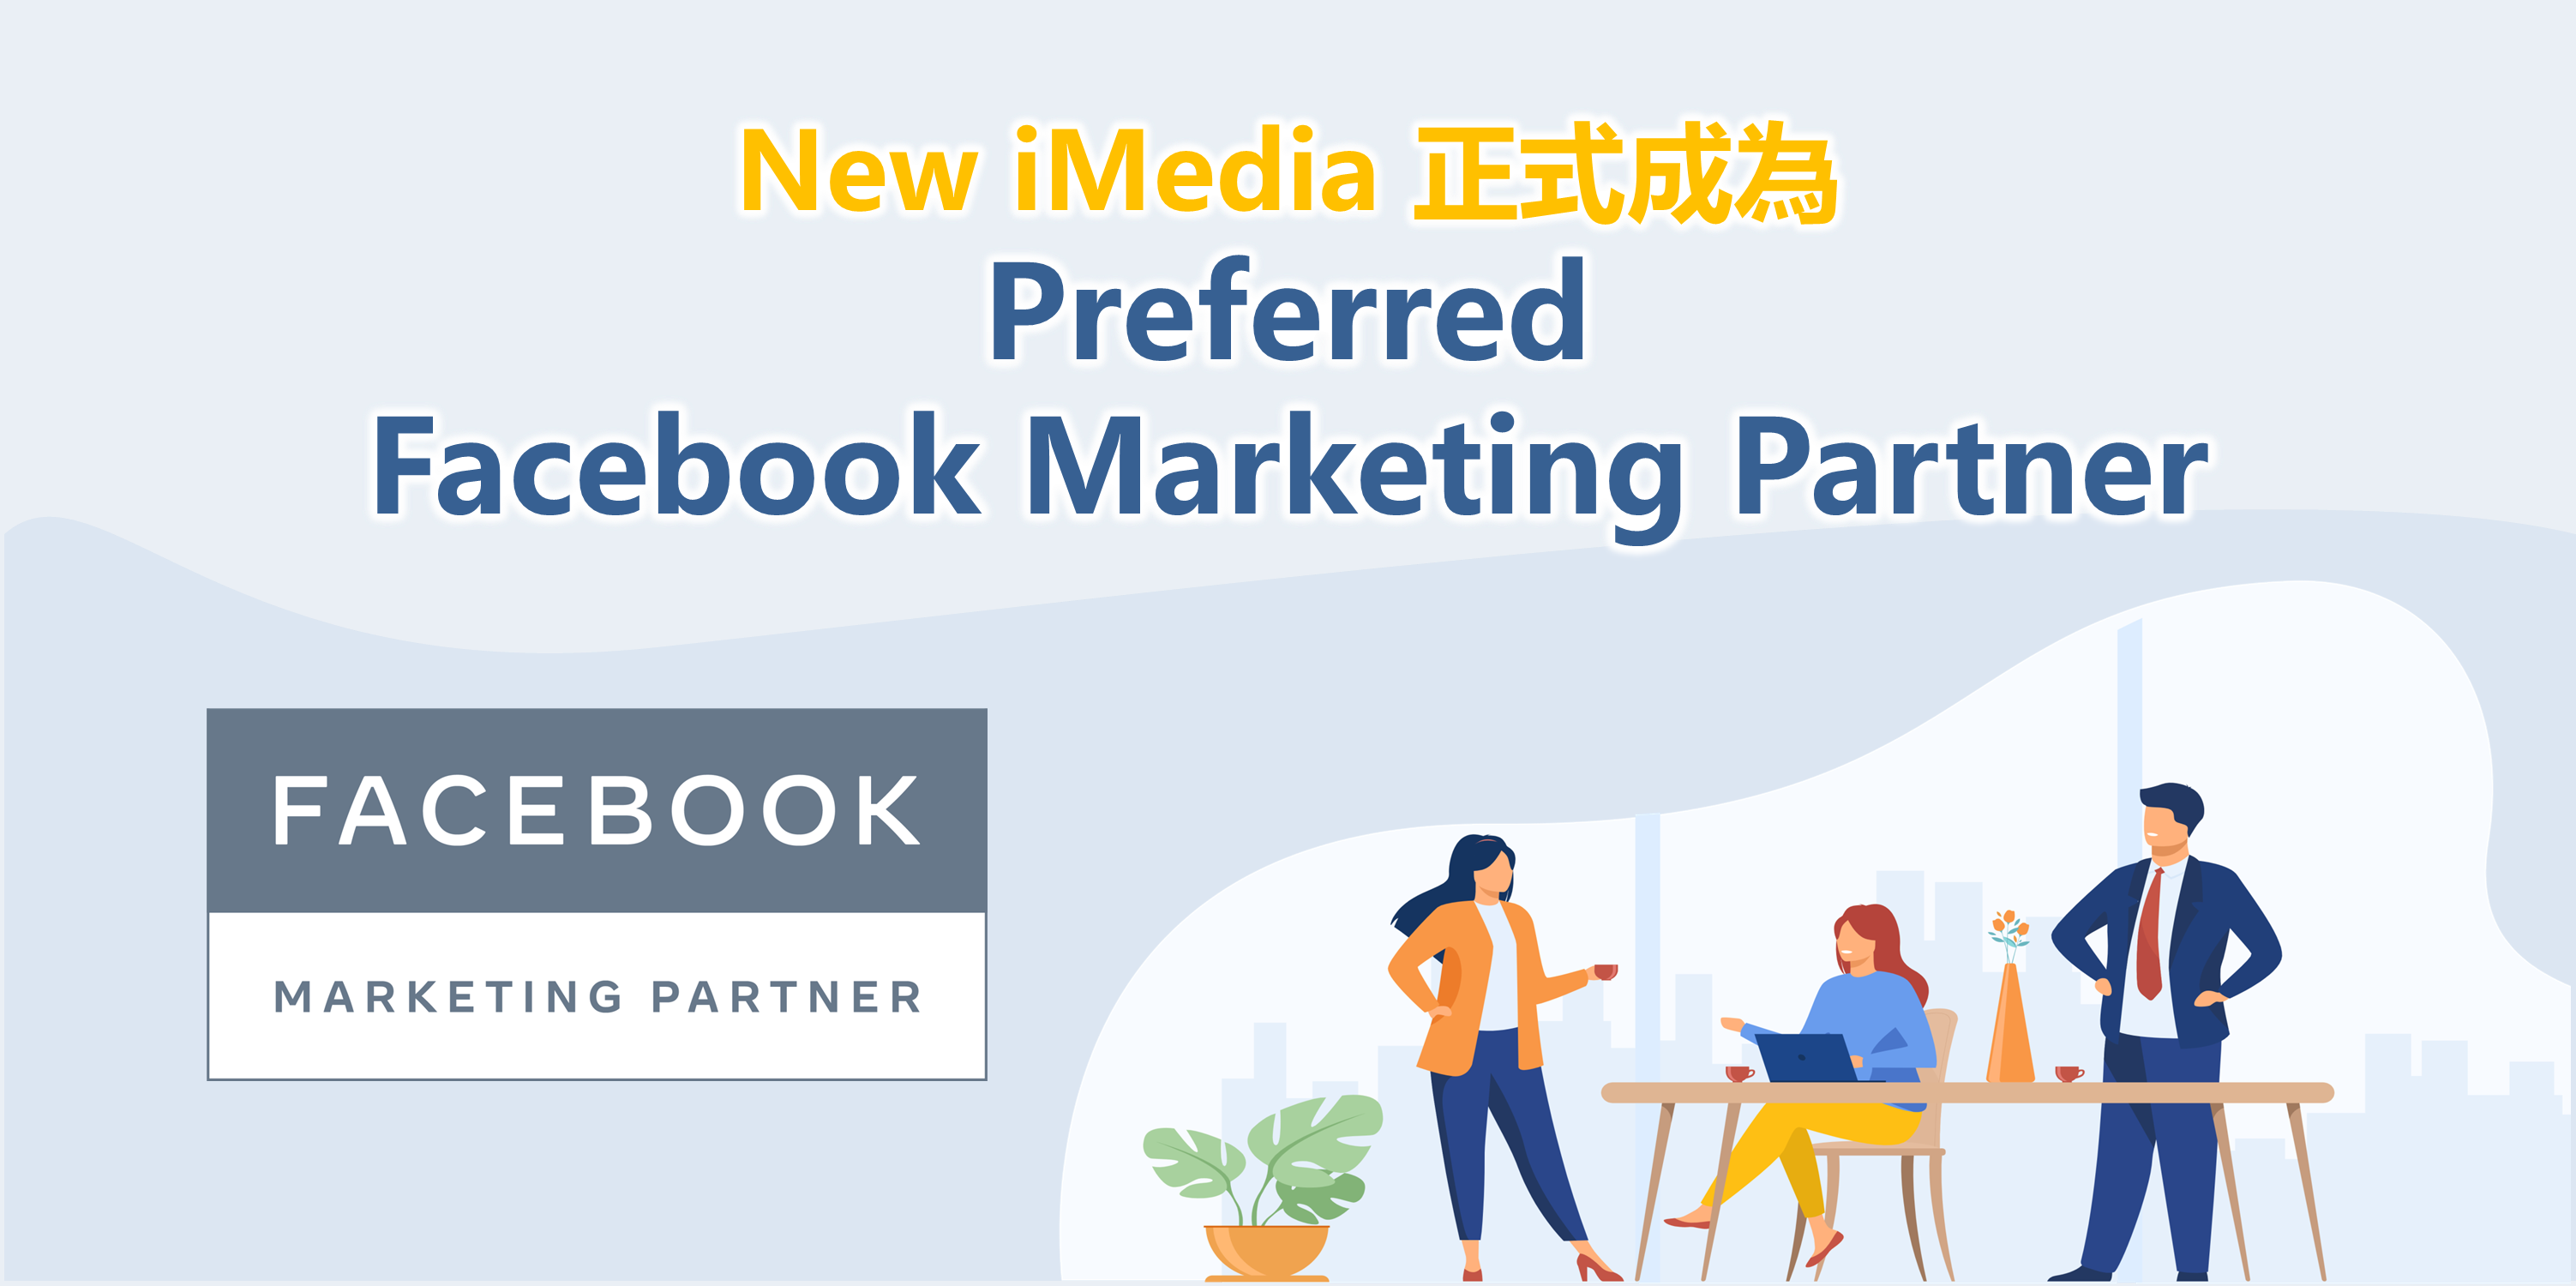 New iMedia - Preferred Facebook Marketing Partner